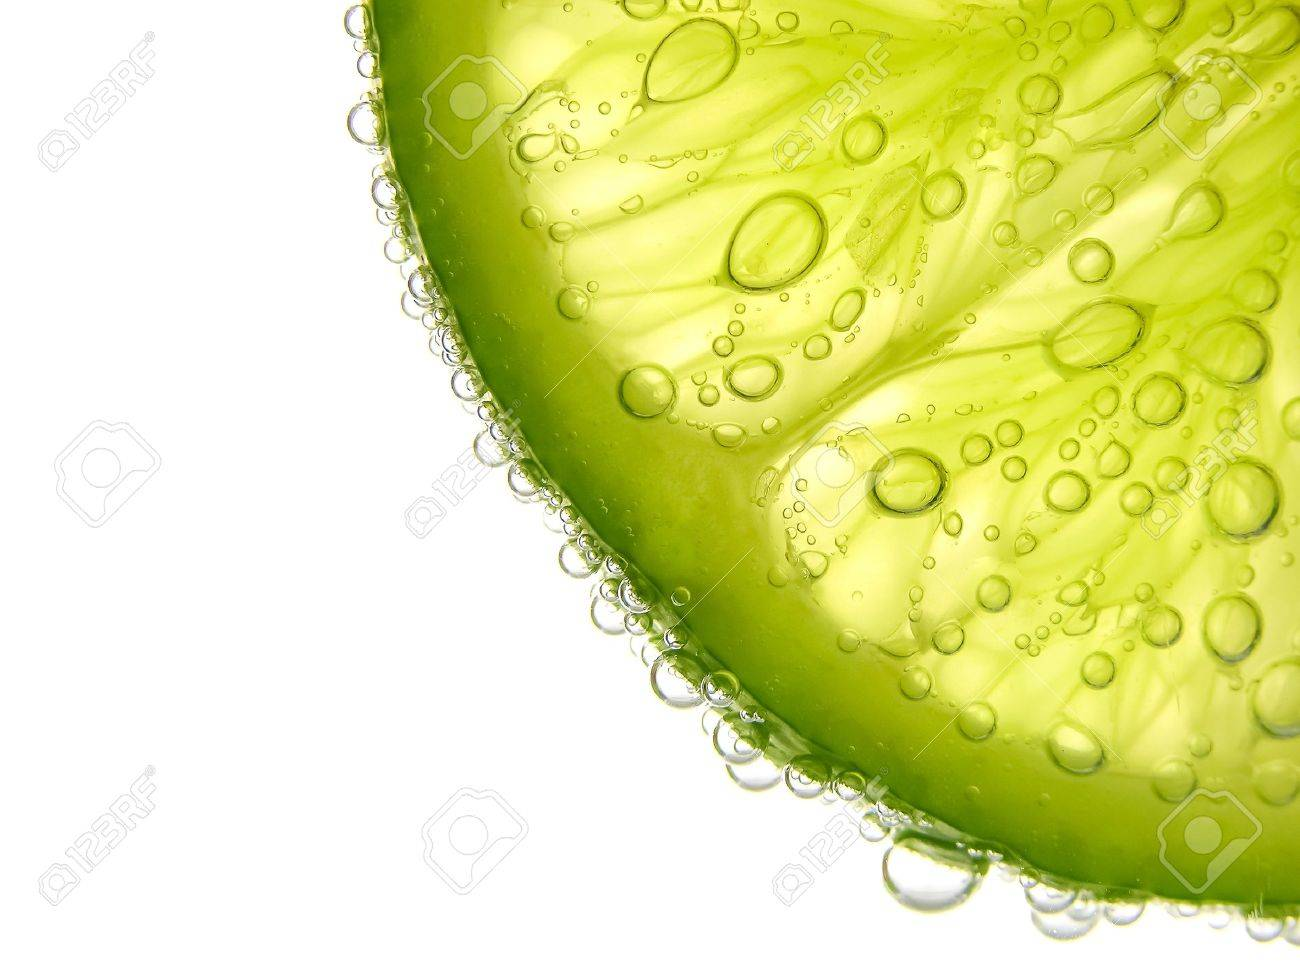 closeup a half lime on white background - 18334264